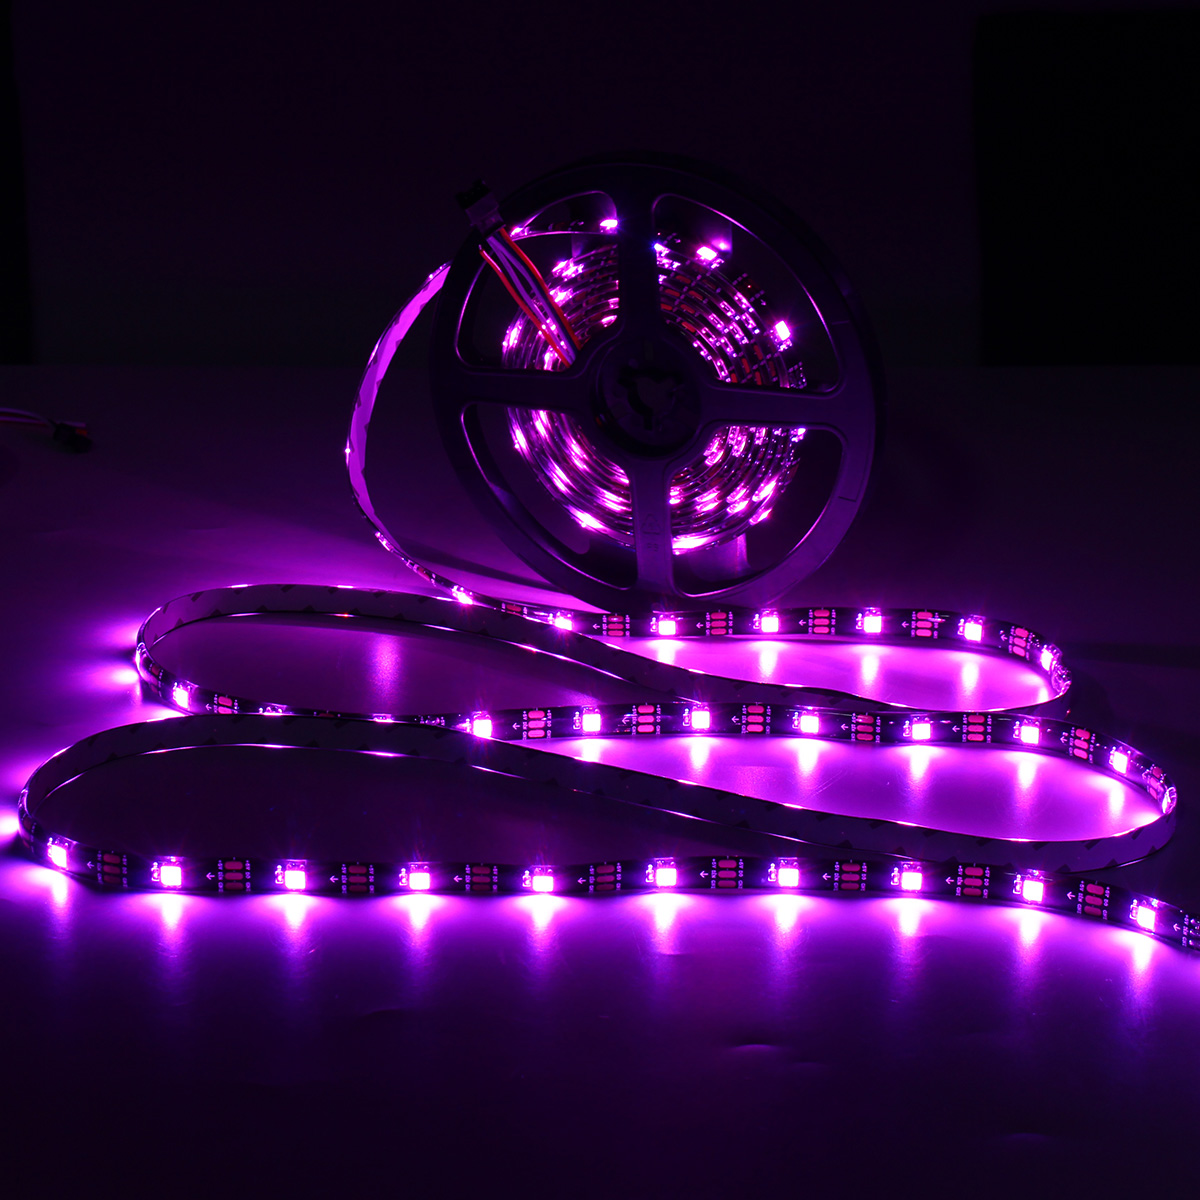 0.5M/1M/2M/3M/4M/5M DC5V USB RGB 5050 WS2812 Waterproof LED TV Back Strip Light+Remote Control Kit